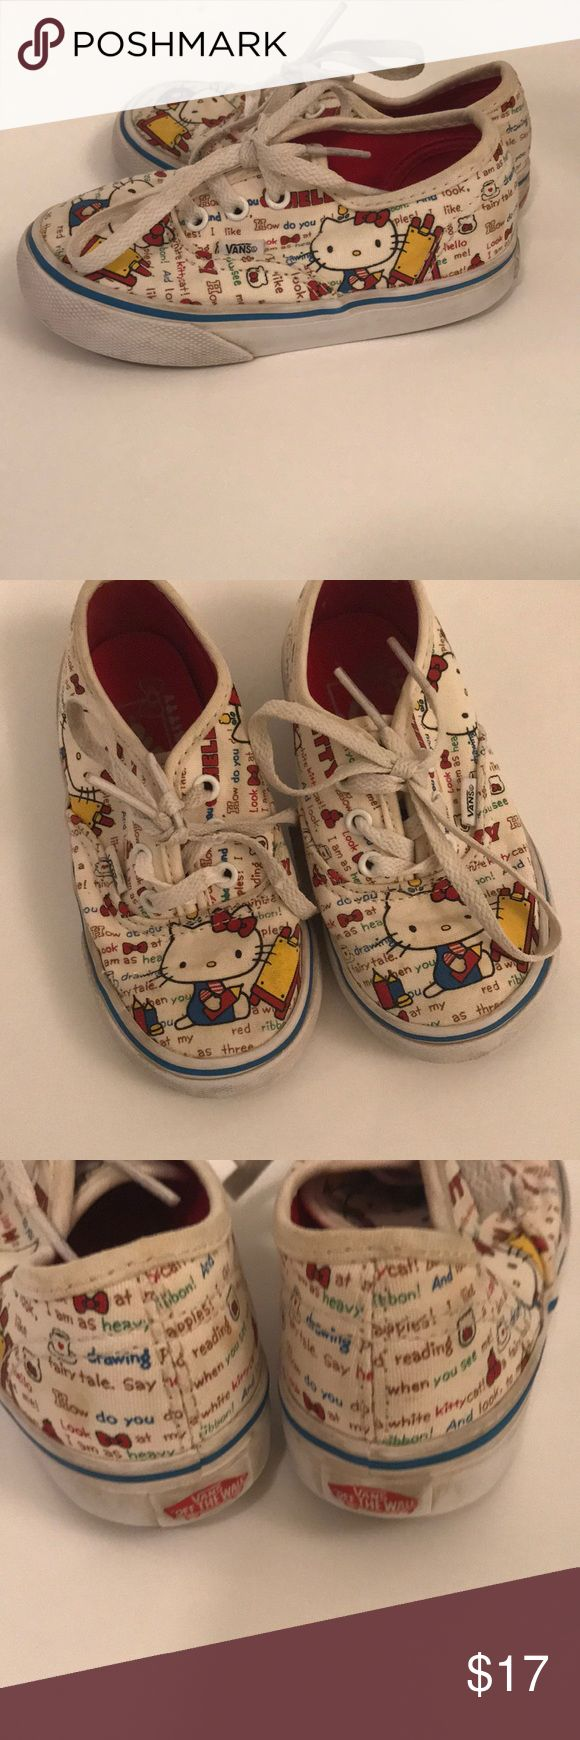 Hello Kitty Vans toddler size 7.5 Vans Hello Kitty edition in toddler size 7.5  Used condition but decently clean and no smells.  Lots of life. Vans Shoes Sneakers